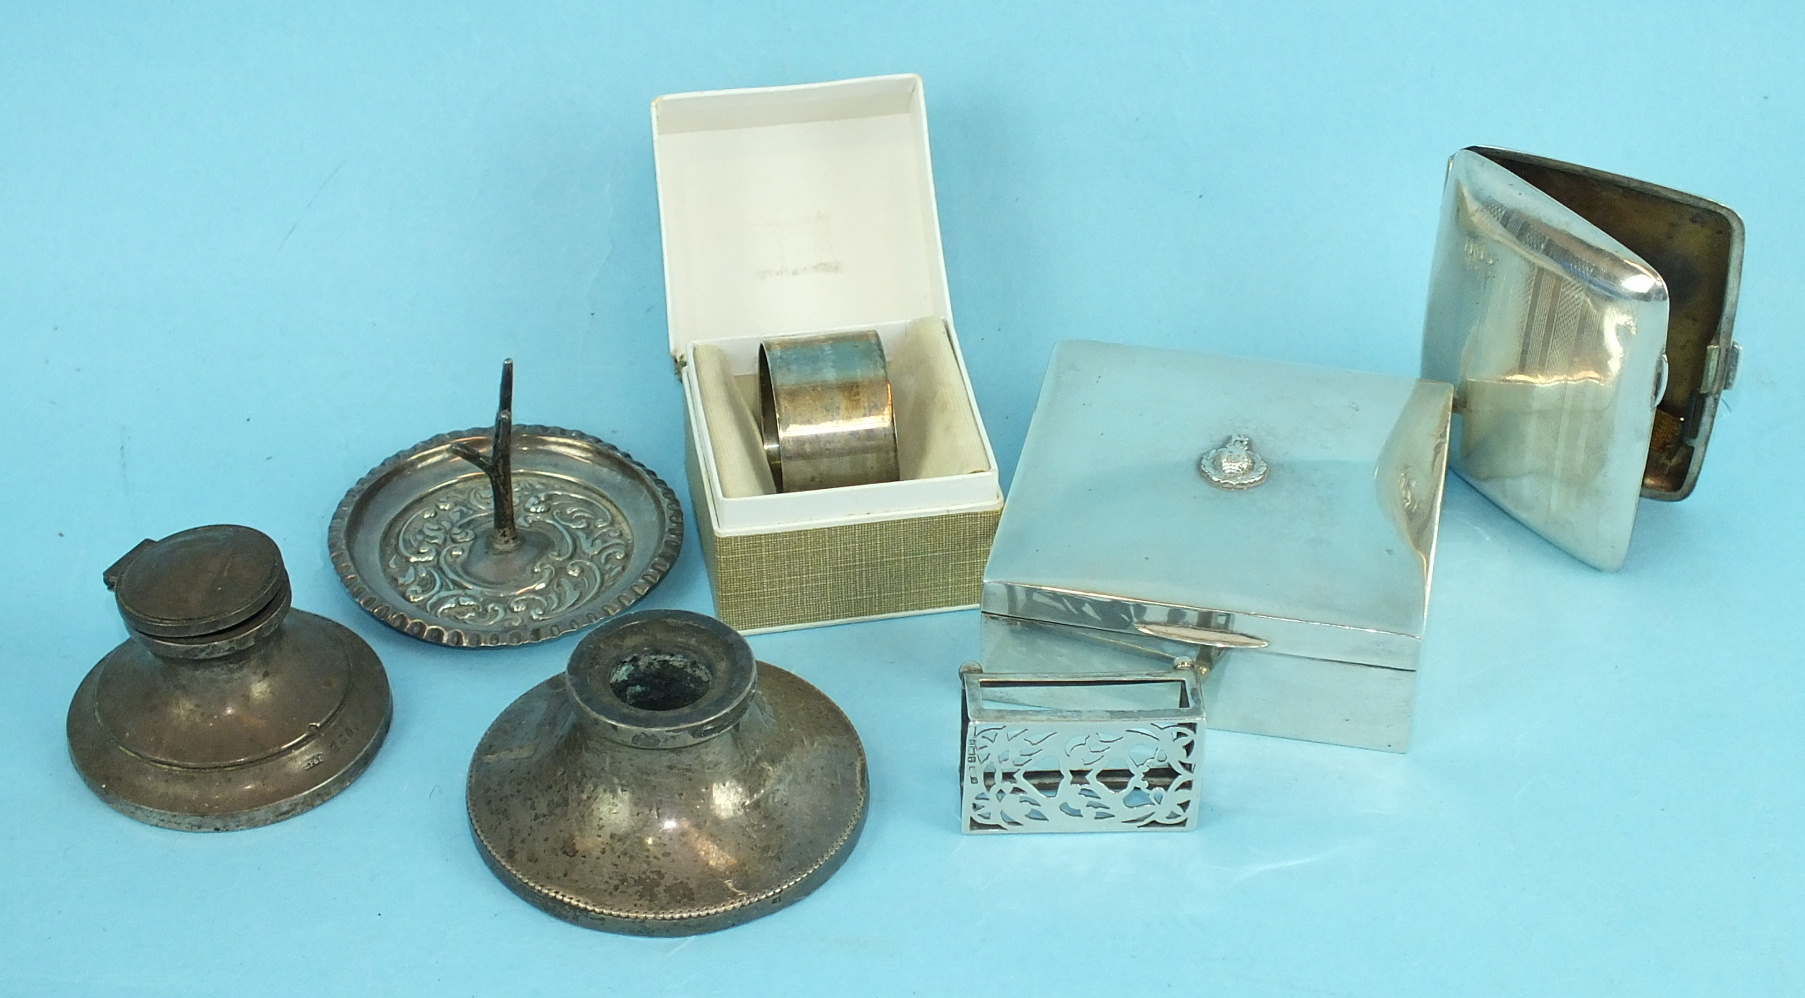 Lot 458 - A late-Victorian embossed ring tree, Birmingham 1901, a small matchbox holder, cigarette case and